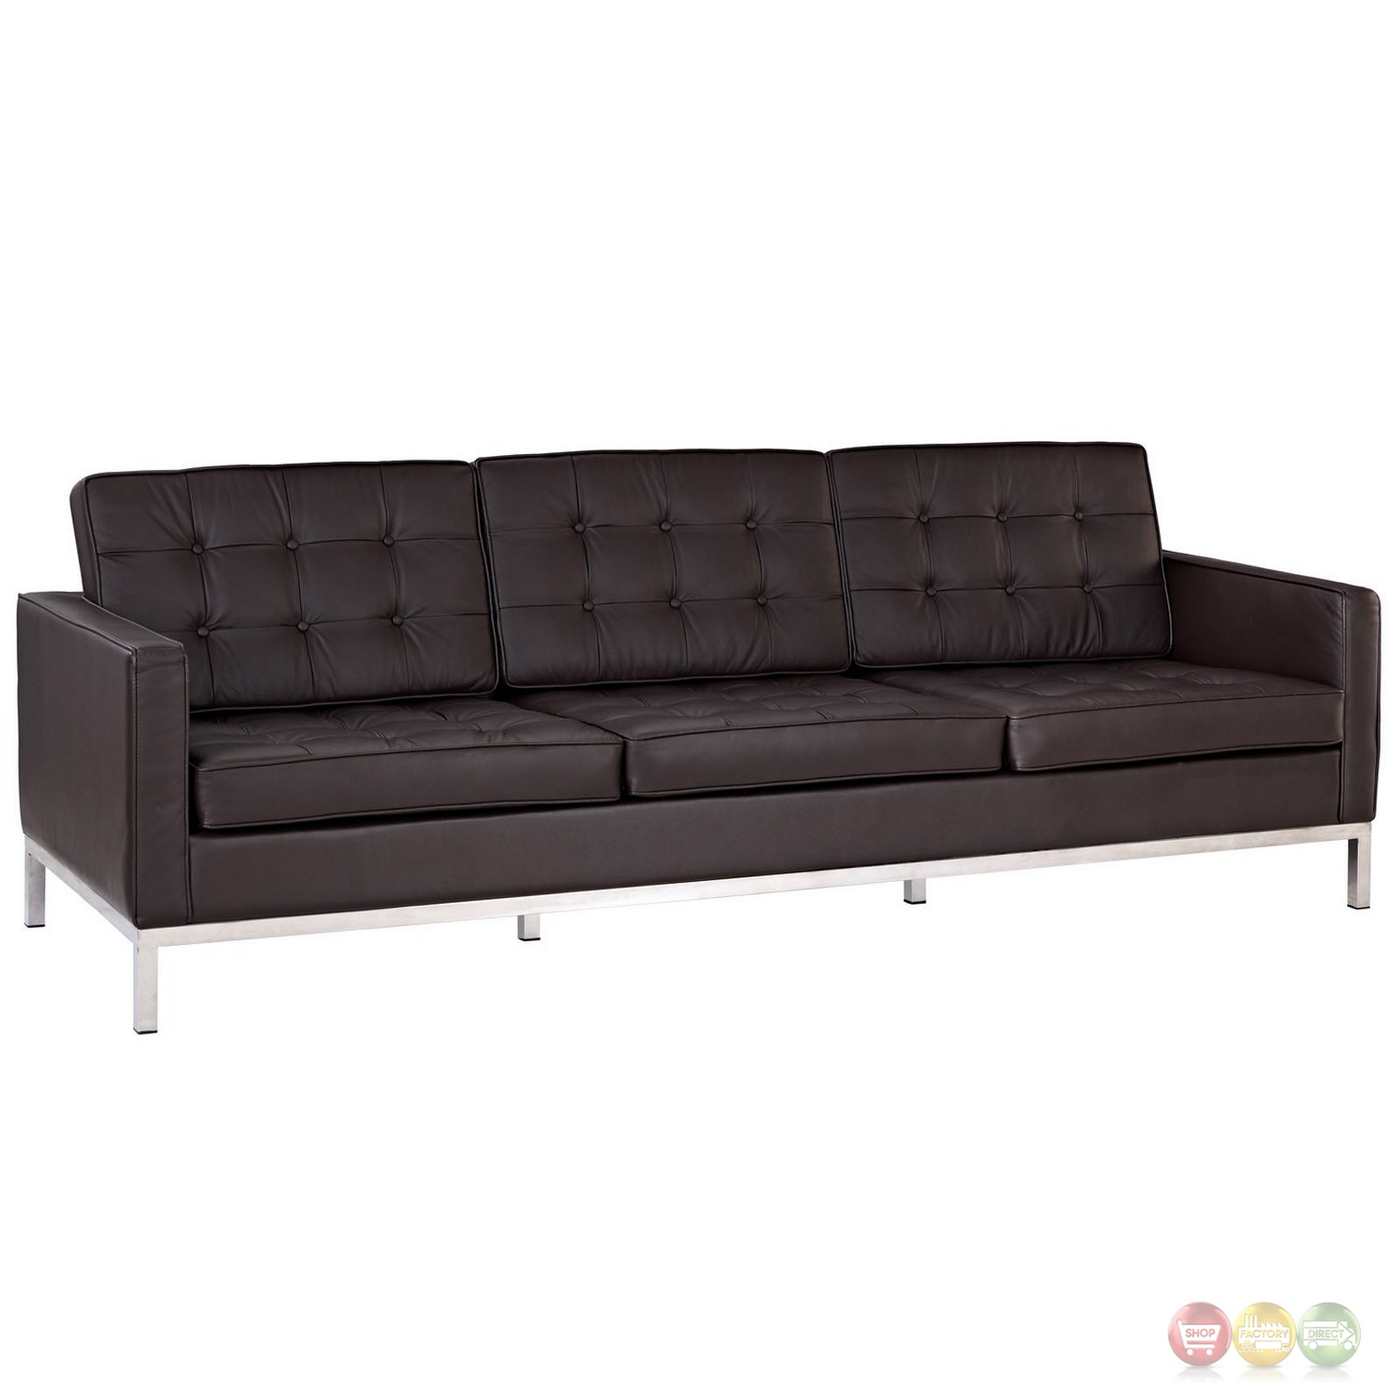 Loft contemporary button tufted leather sofa with steel for Contemporary leather furniture